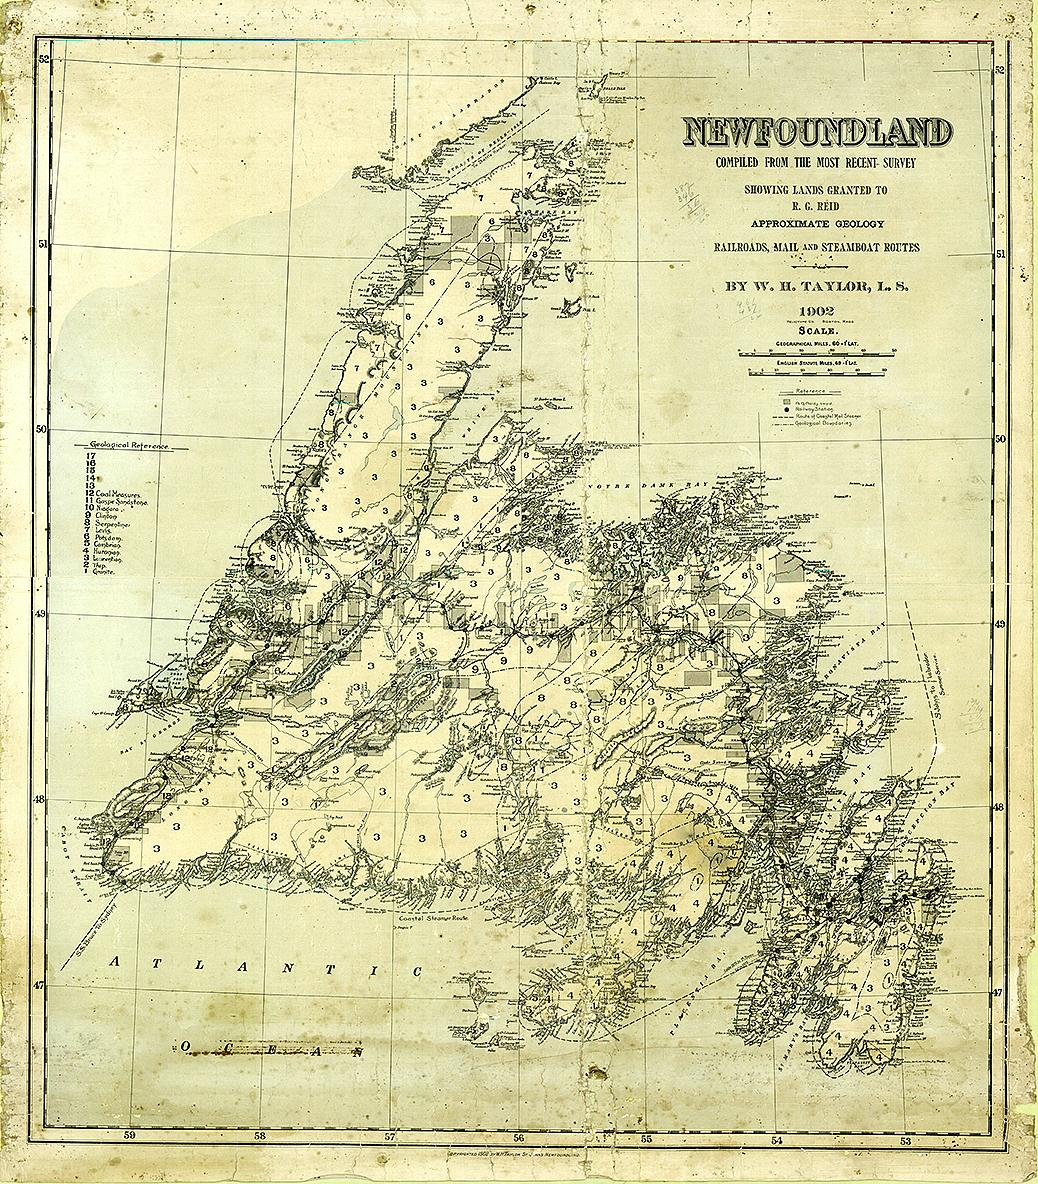 hand-drawn, antique map of Newfoundland